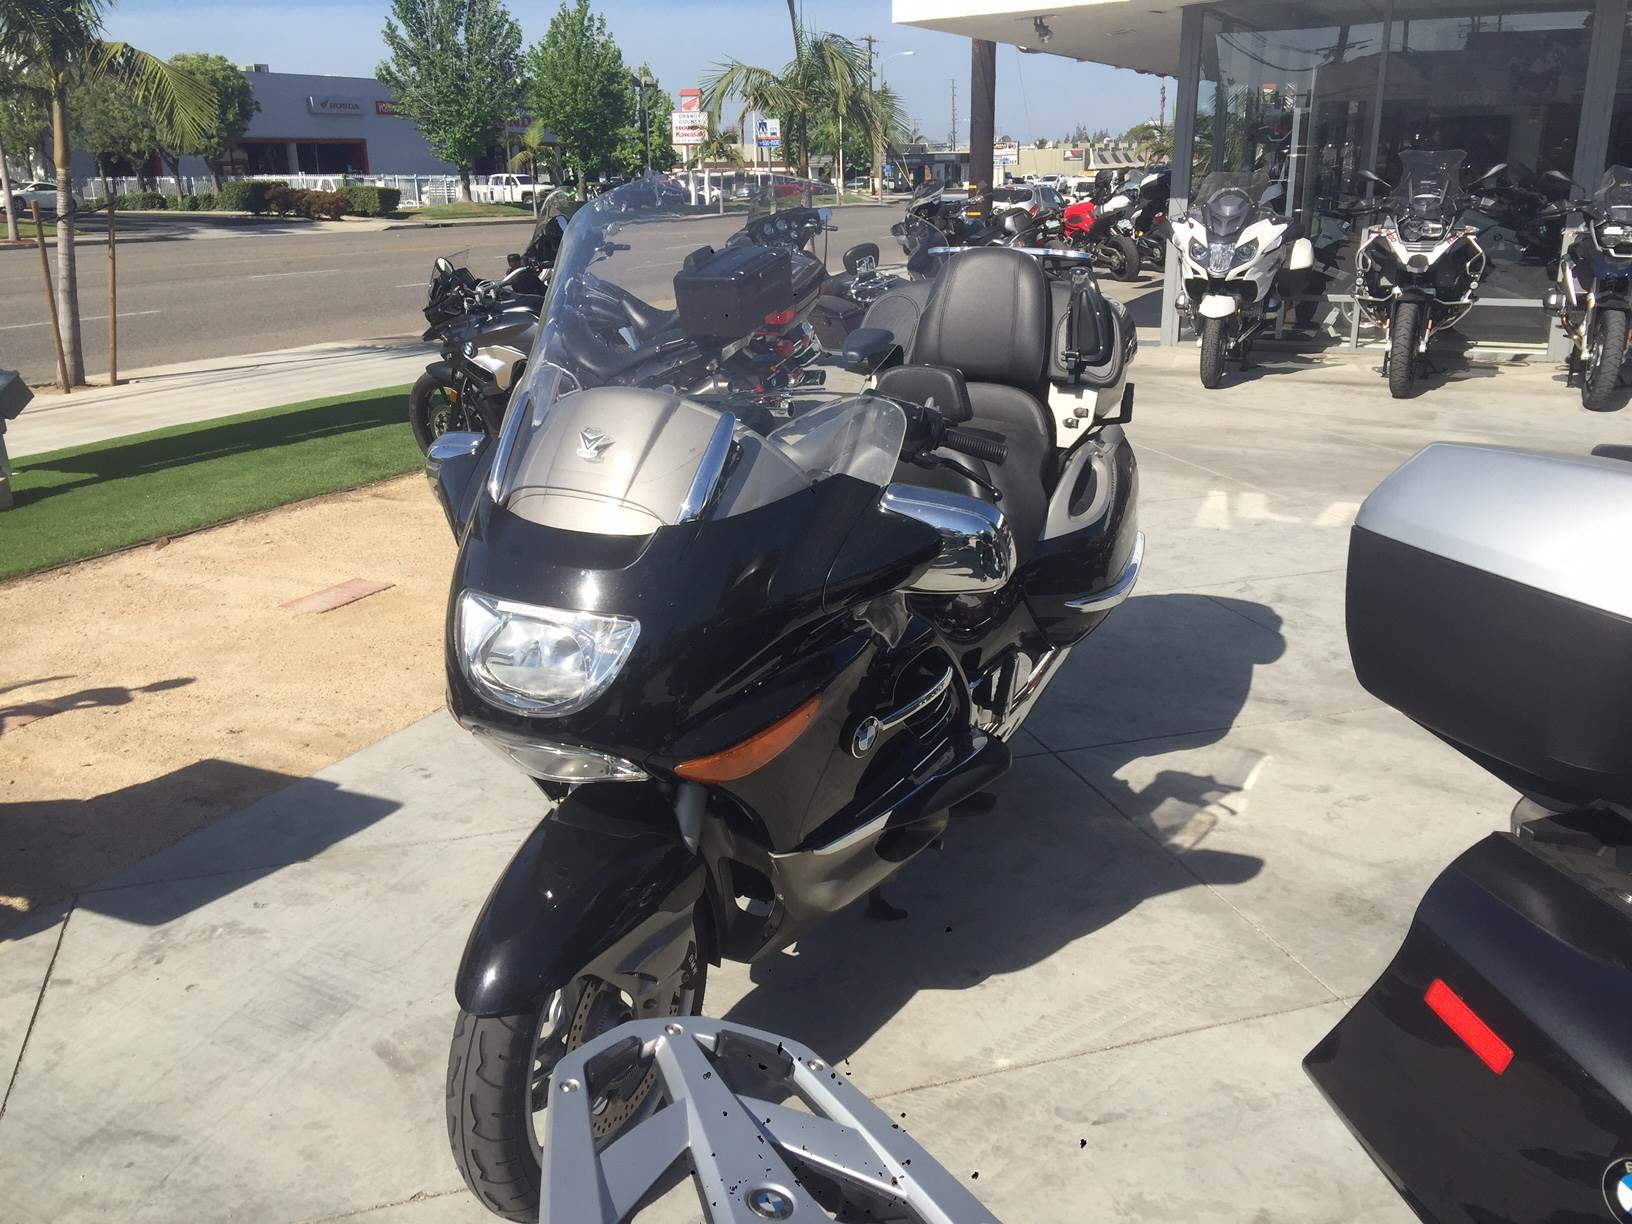 2009 BMW K 1200 LT in Orange, California